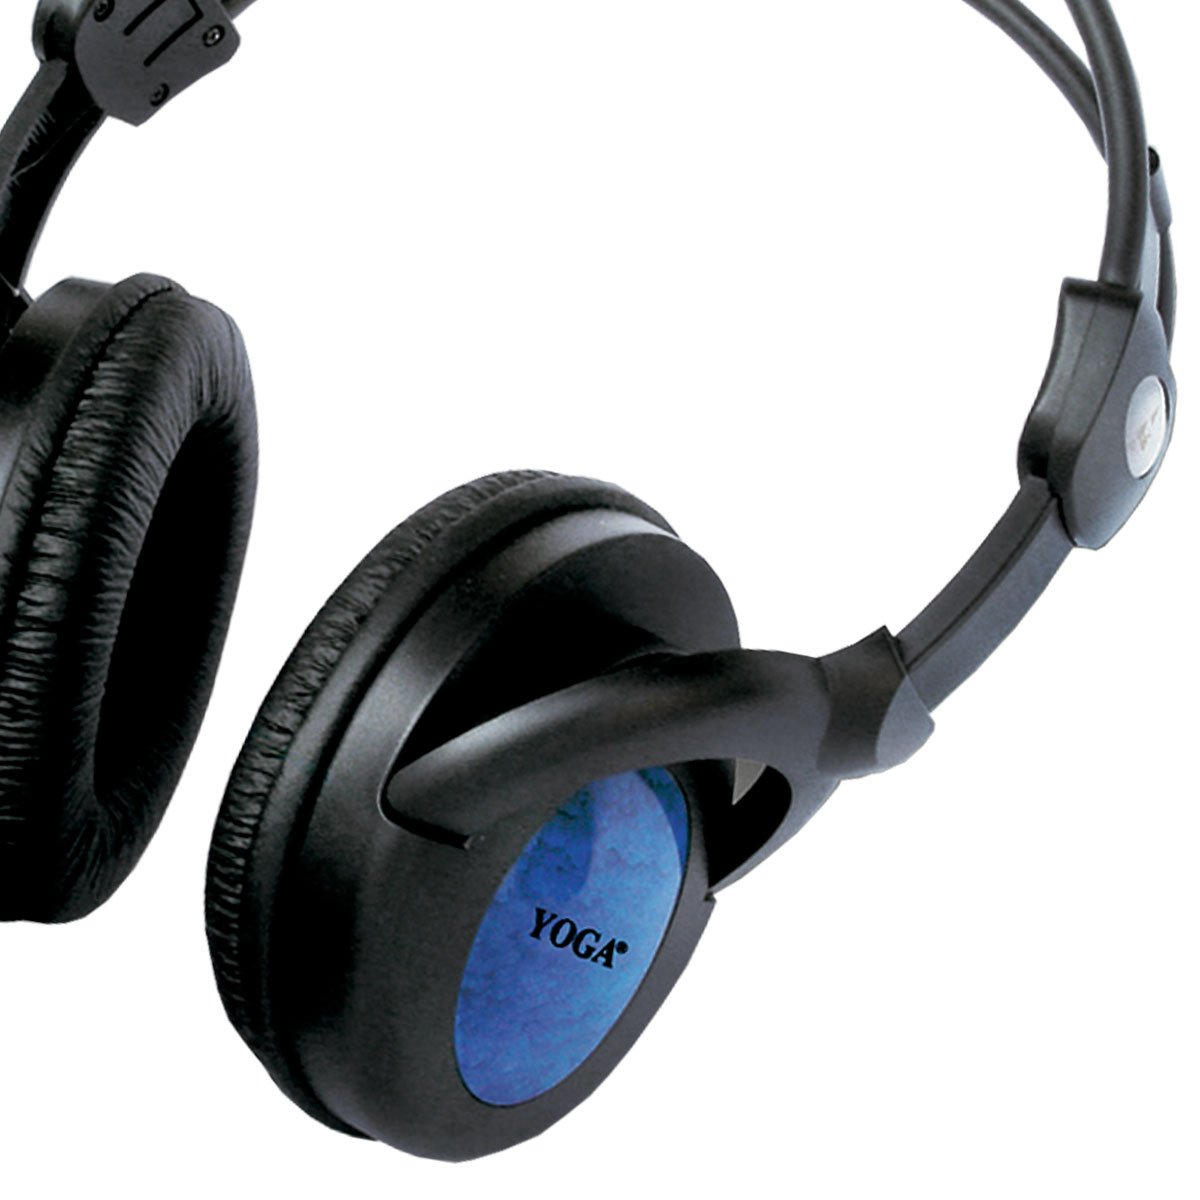 AM860 - Fone de Ouvido Over-ear AM 860 - Yoga